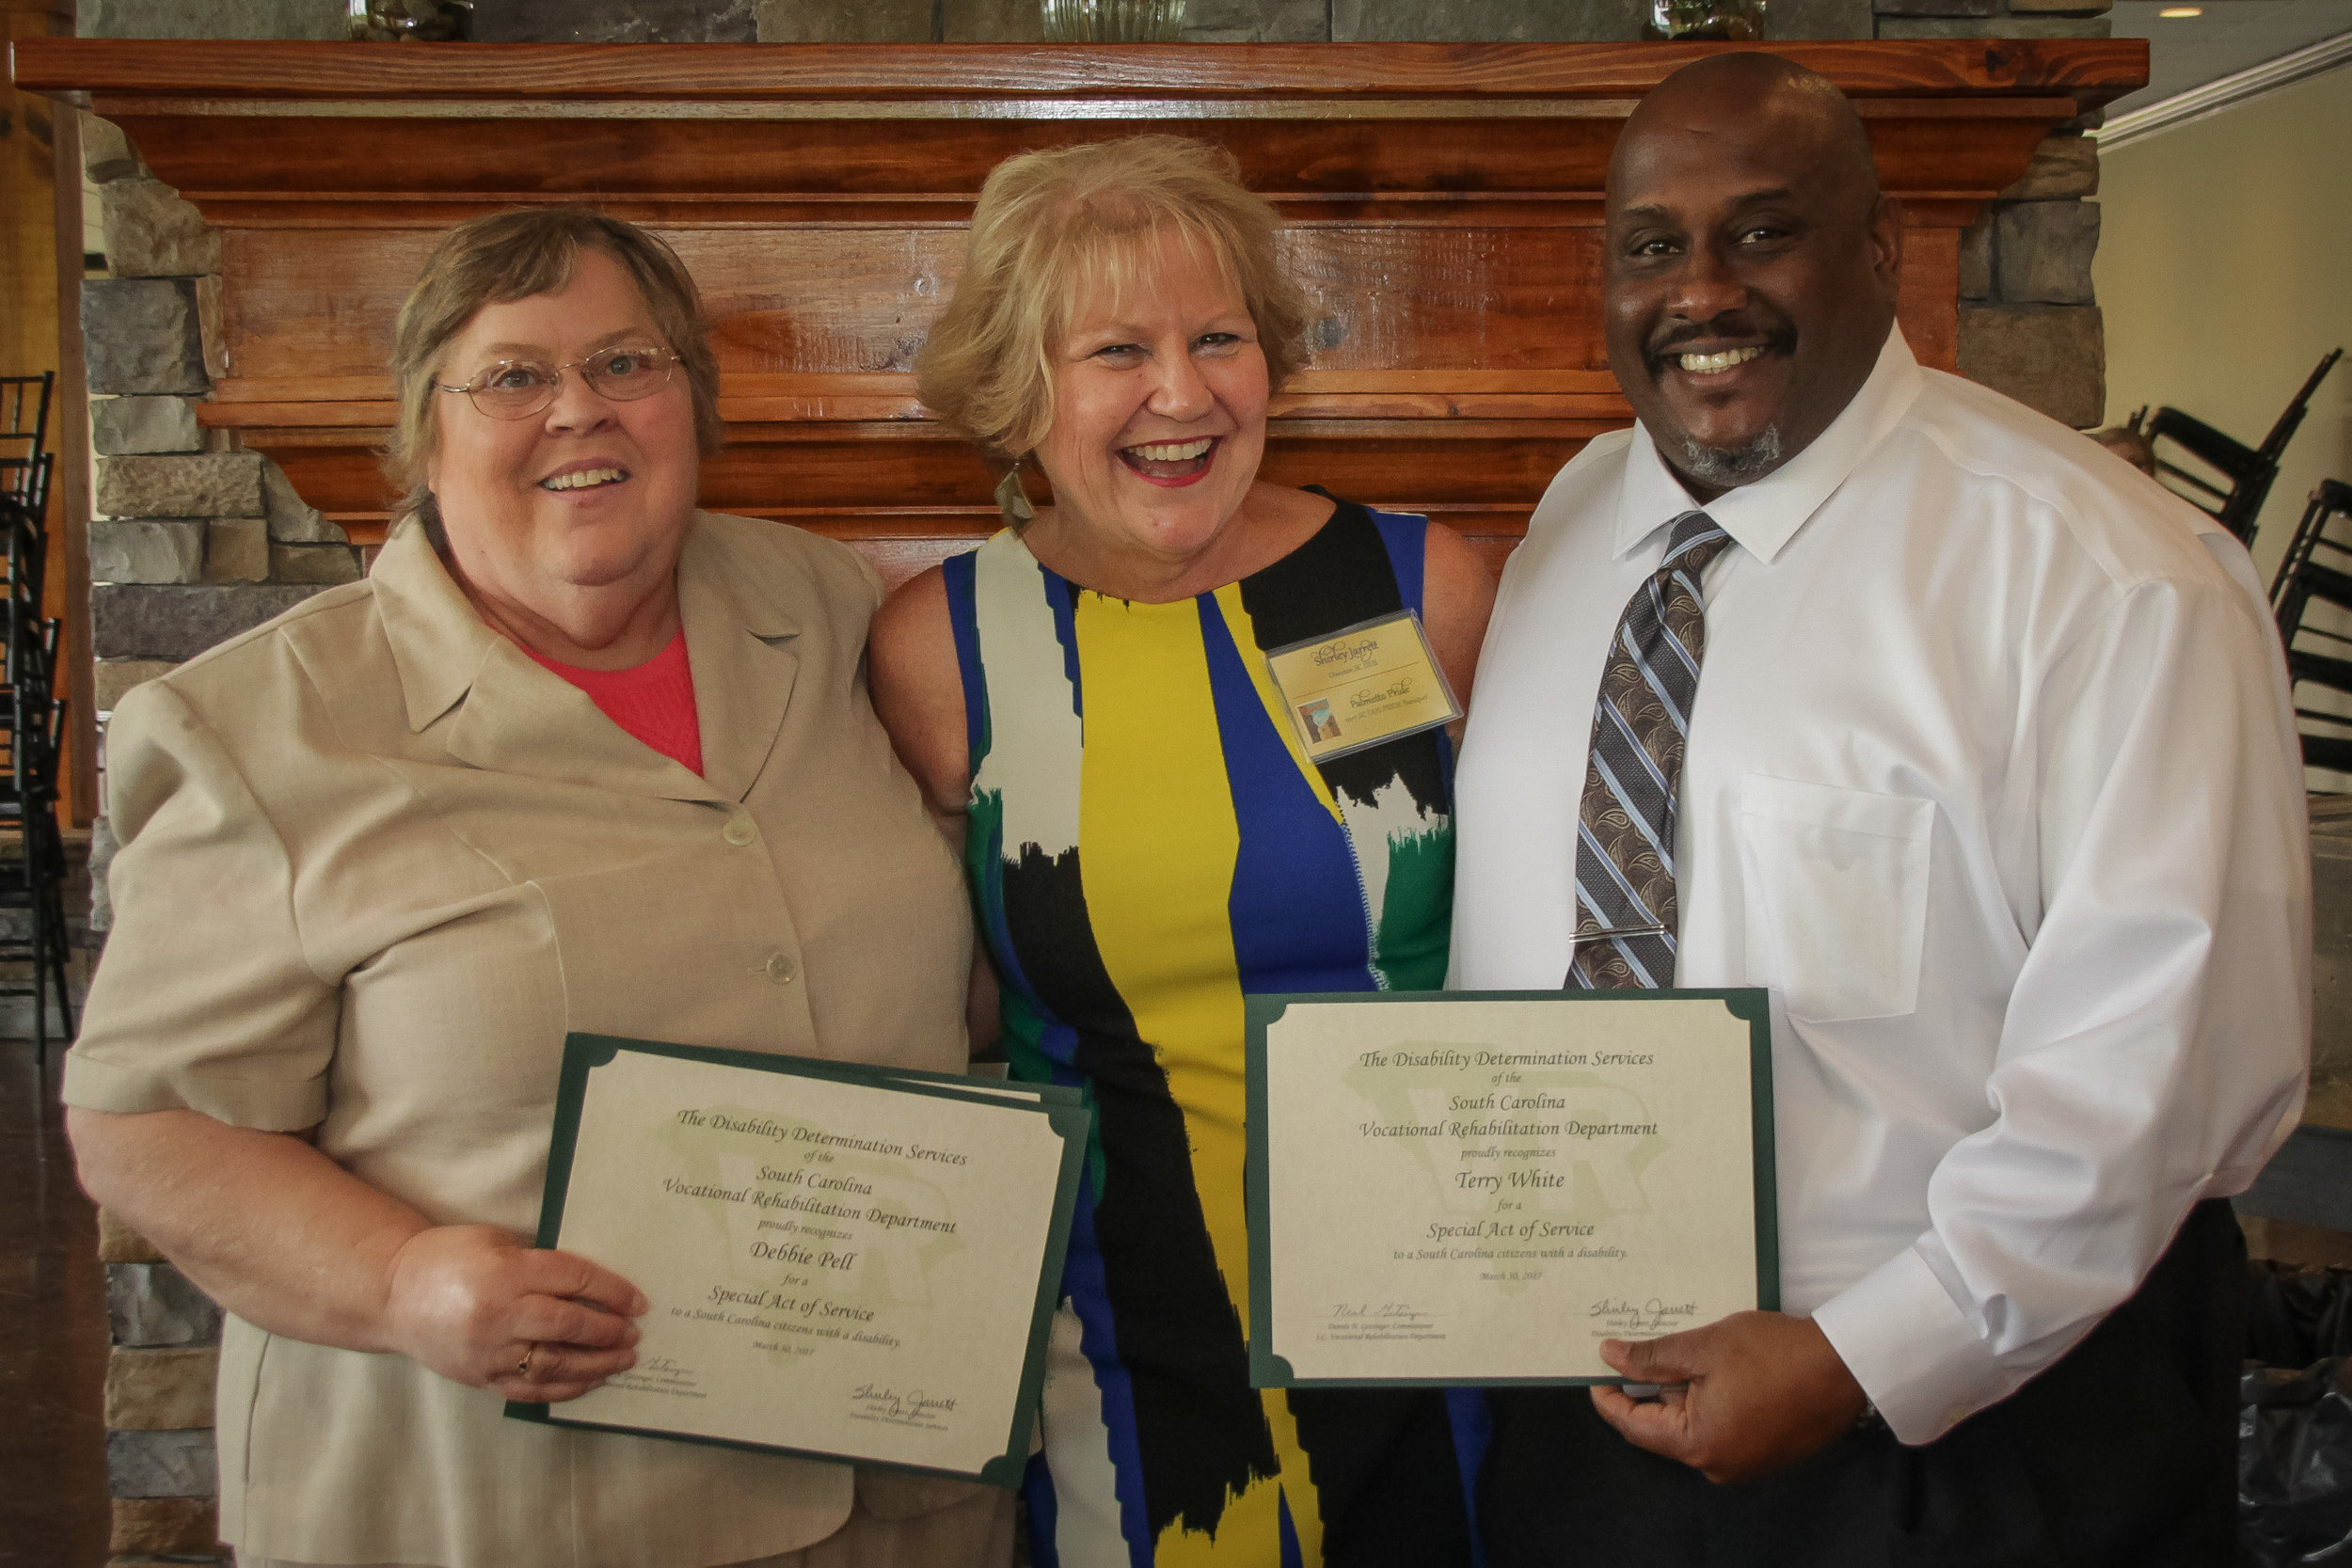 Mary Simmons Special Act of Service  Debbie Pell, Terry White, Sally Phillips (not pictured) - Charleston DDS Shirley Jarrett, Disability Determination Services (DDS) Director